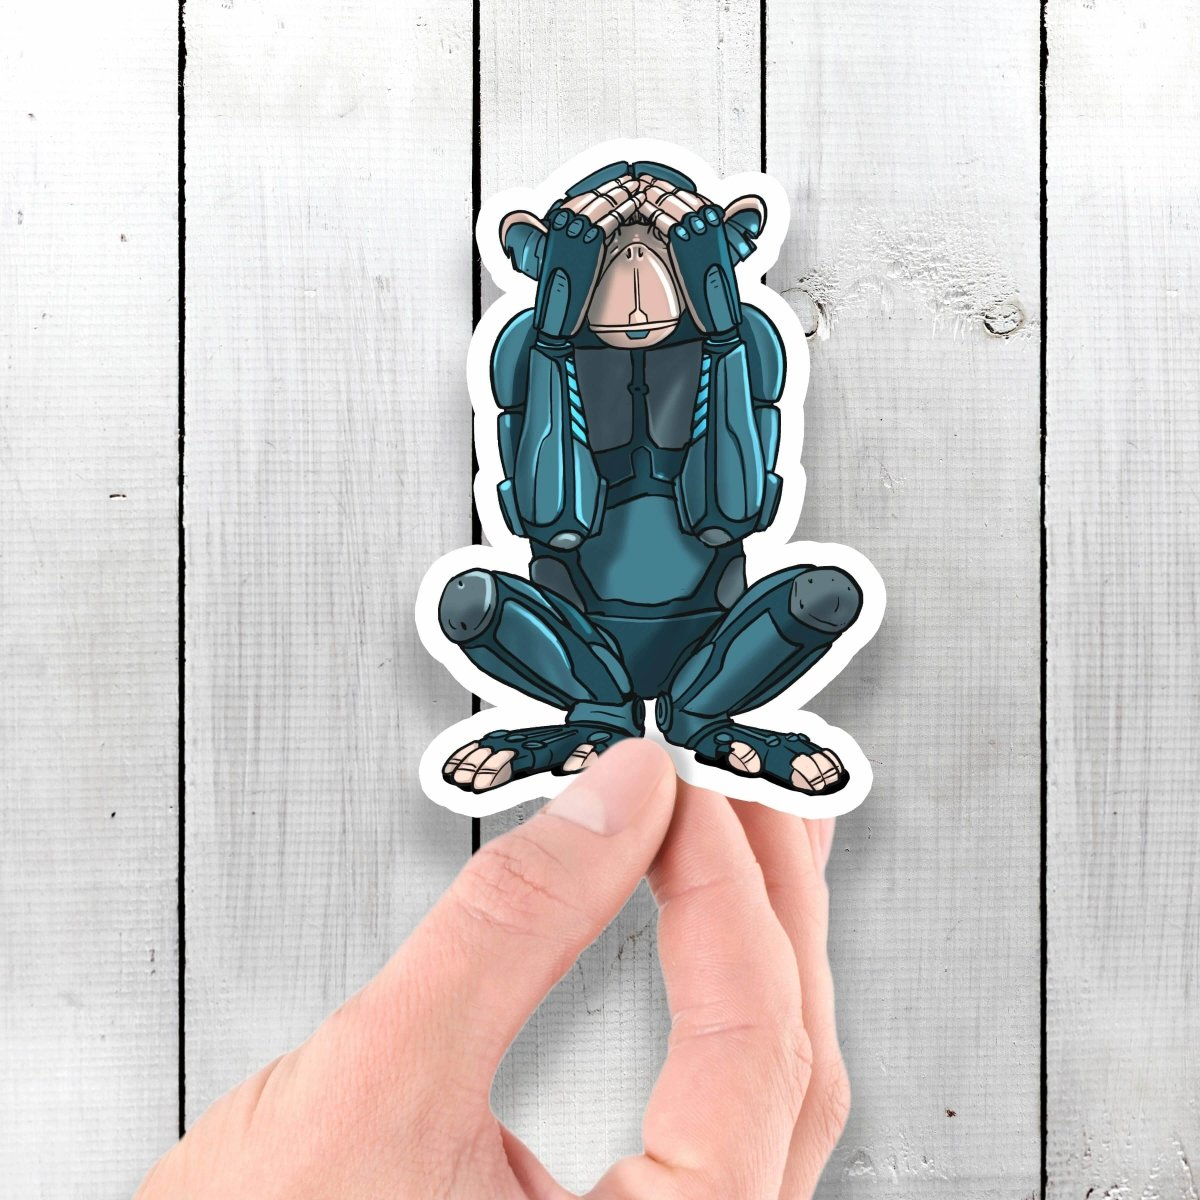 See No Evil Monkey Robot - Vinyl Sticker - Dan Pearce Sticker Shop